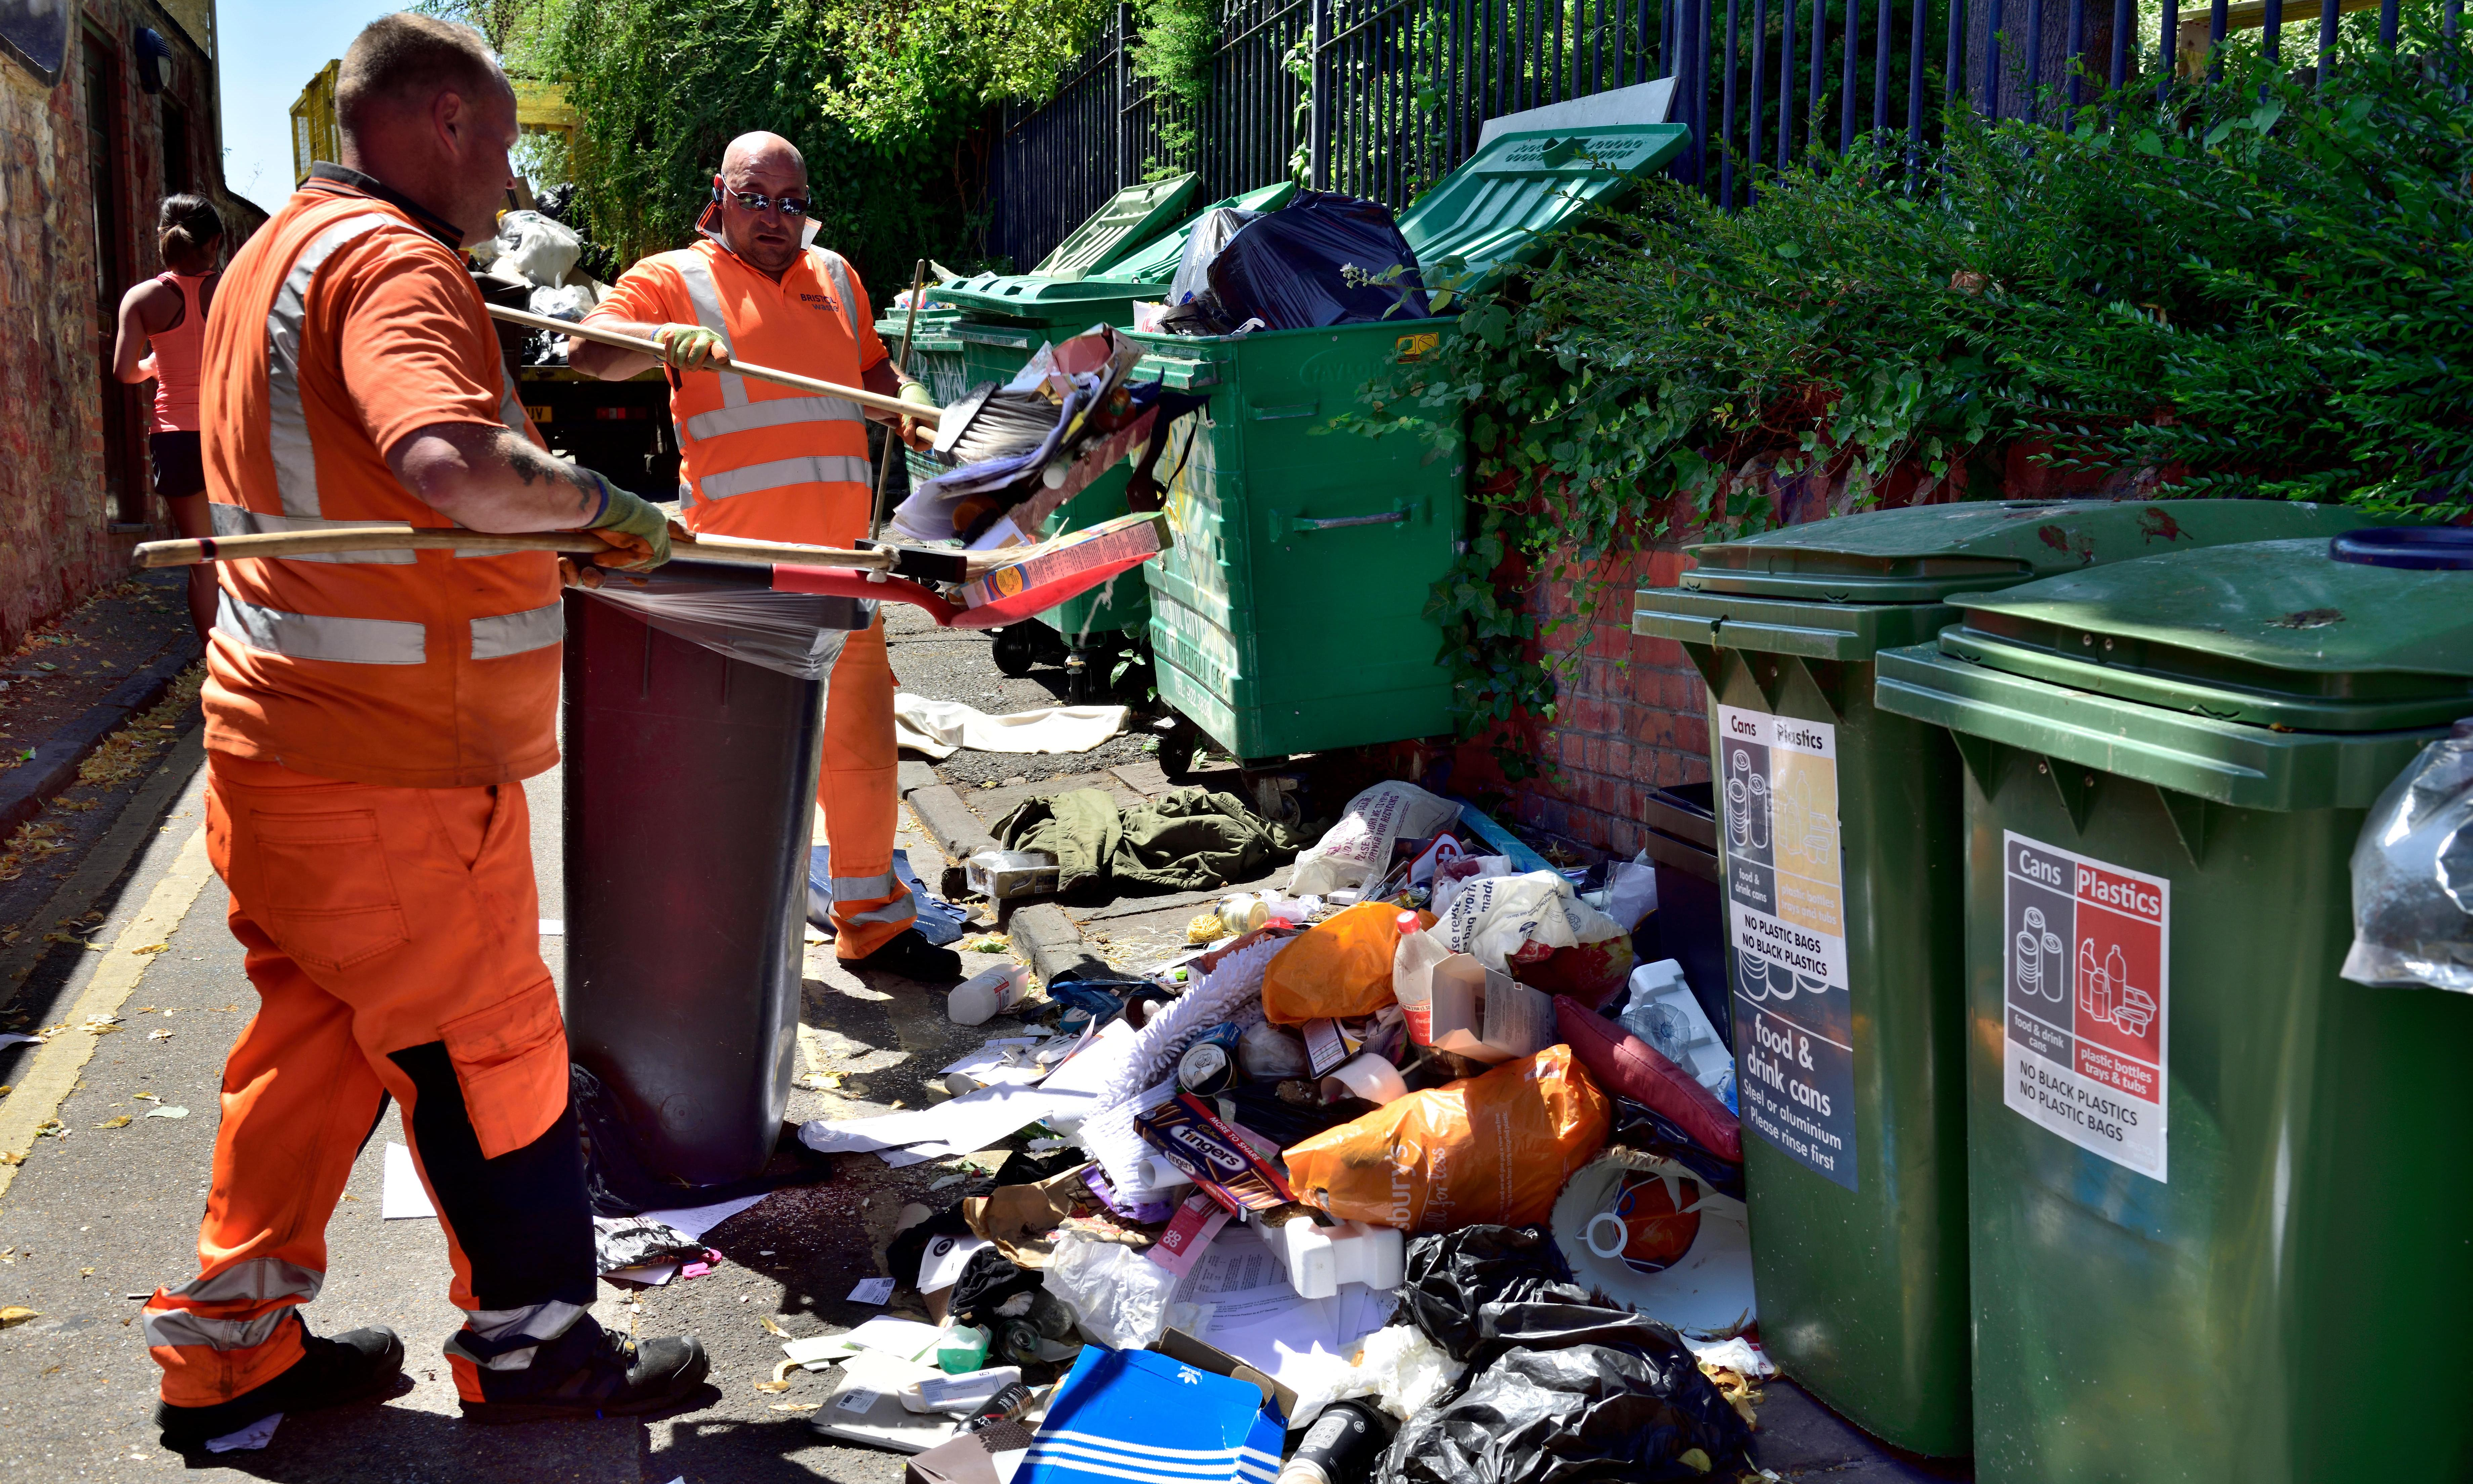 English councils deal with more than 1m fly-tipping cases